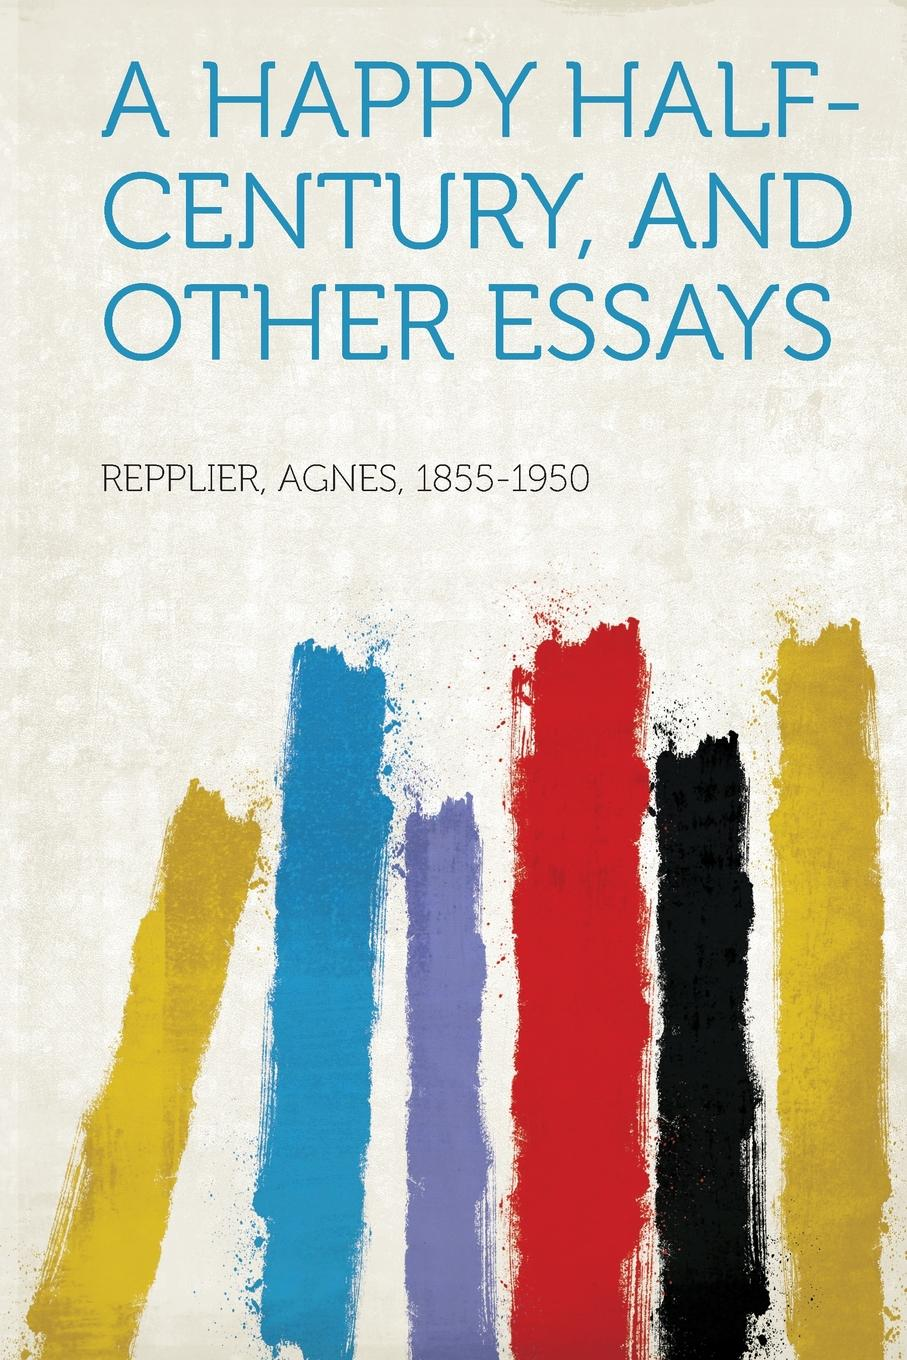 Repplier Agnes 1855-1950 A Happy Half-Century, and Other Essays